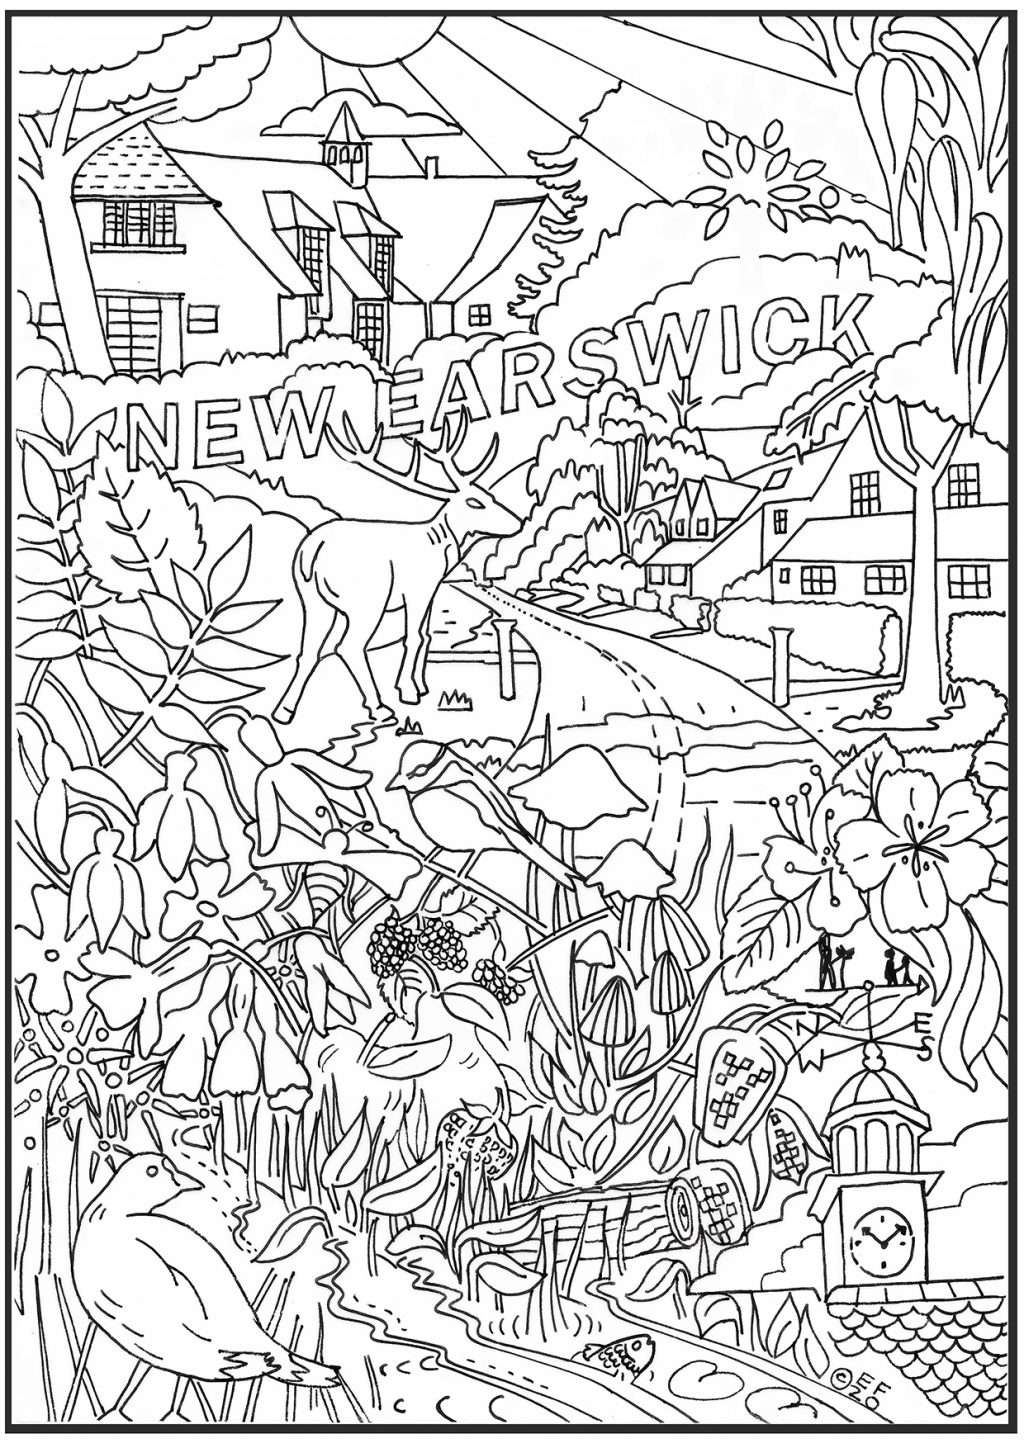 New_Earswick_Colouring_Sheet_Liz_Foster